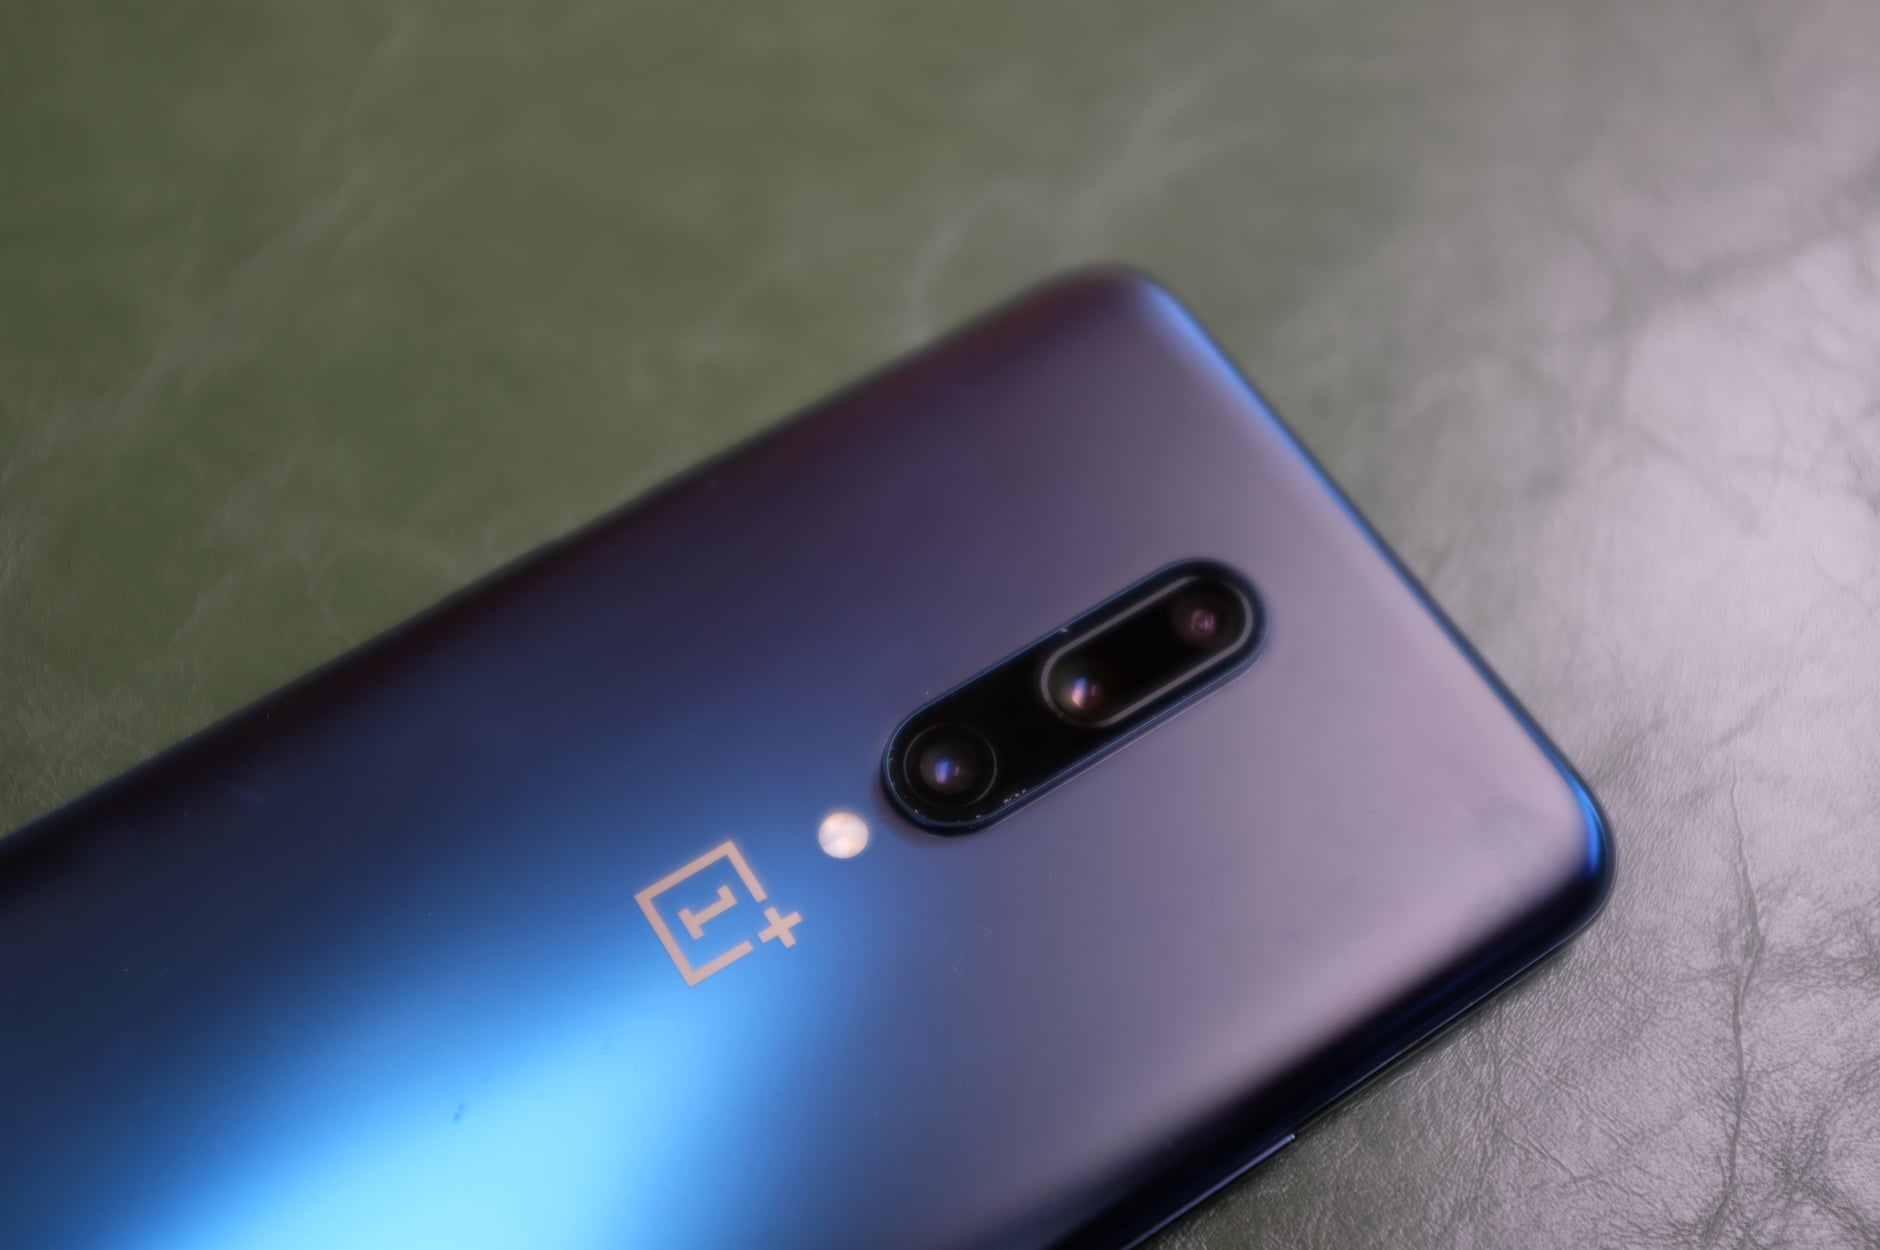 , One Plus Announces To Launch 5G Powered Device soon